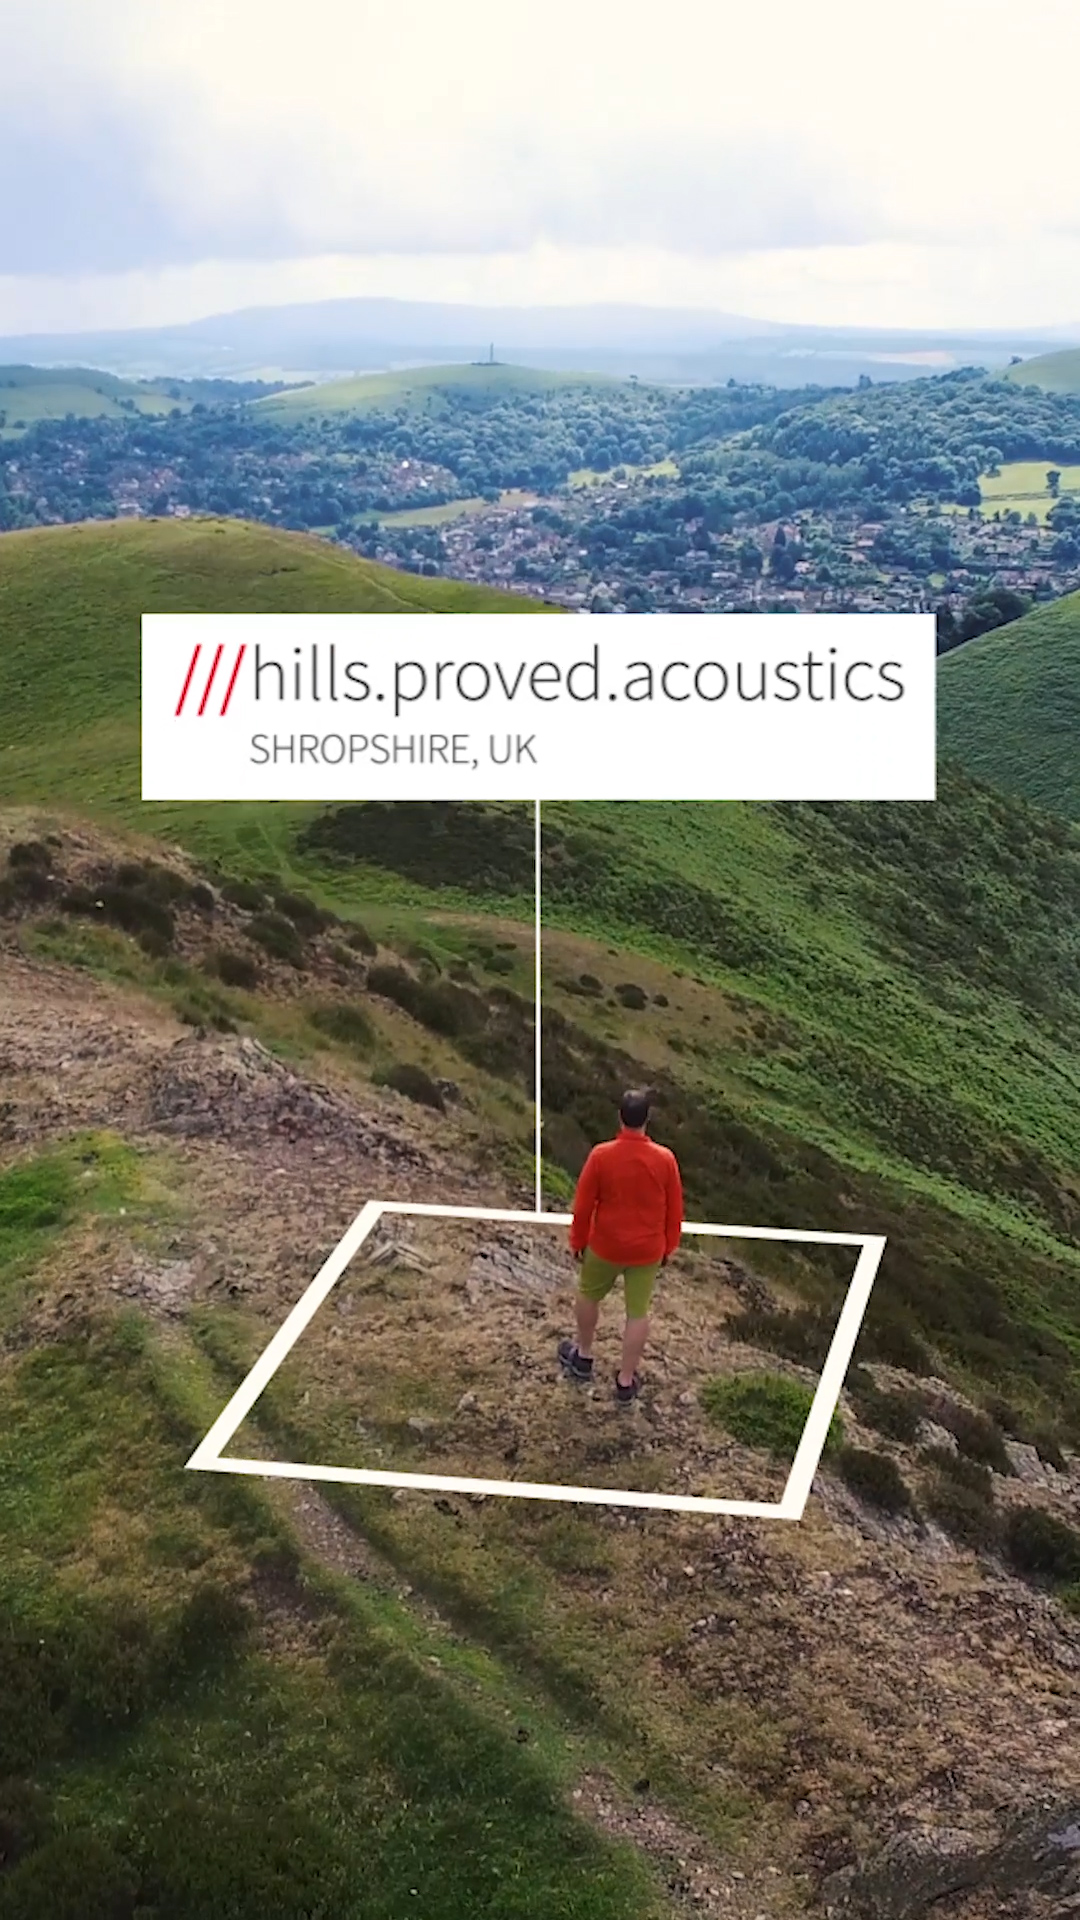 man walking through hilly landscape at 3 word address hills.proved.acoustics